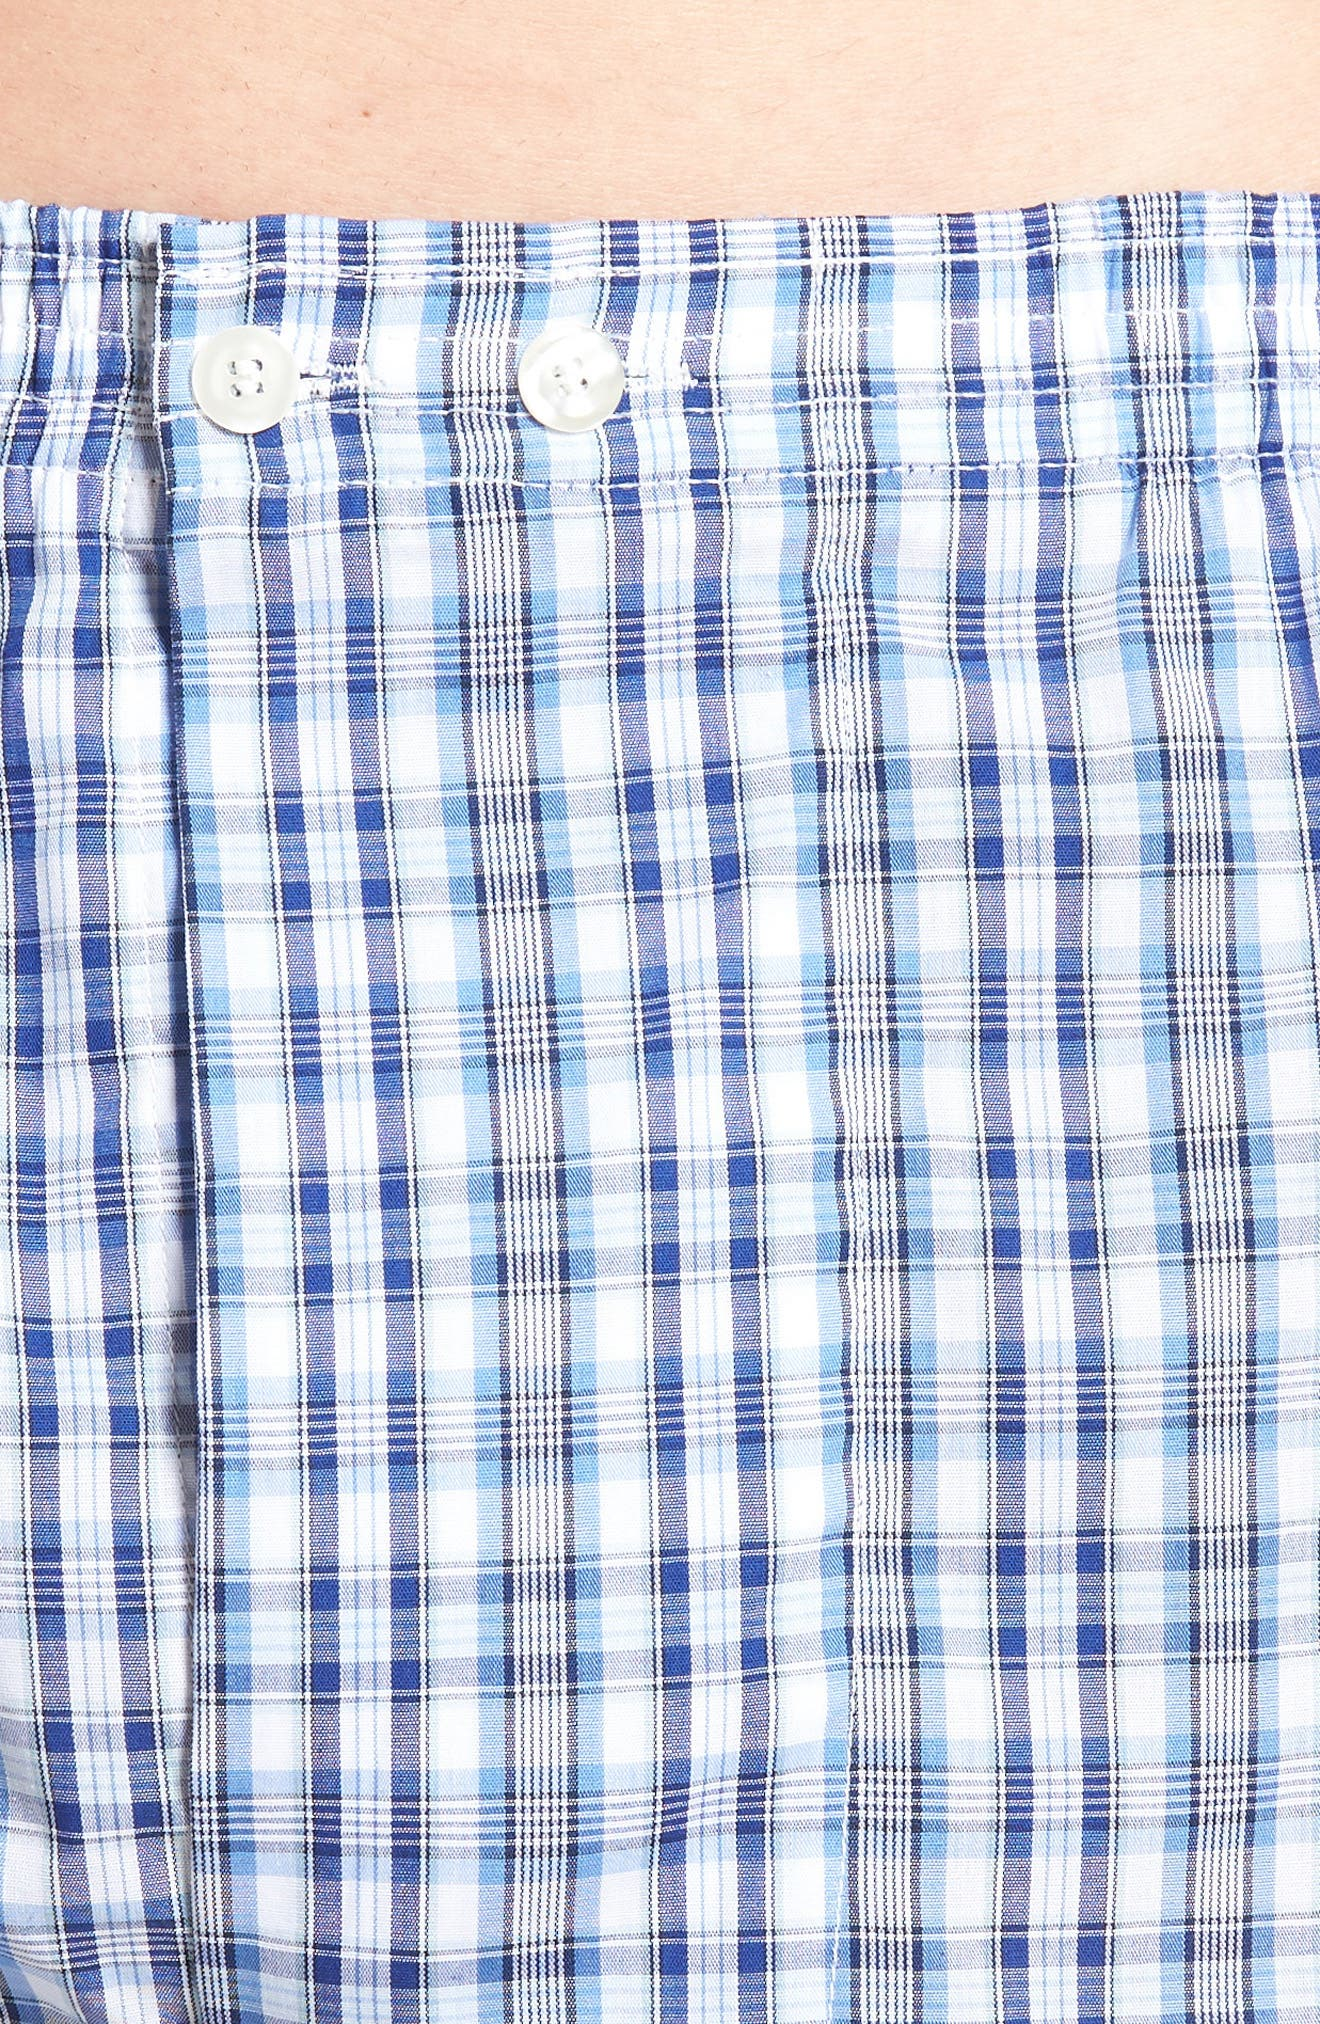 3-Pack Classic Fit Boxers,                             Alternate thumbnail 5, color,                             BLUE DAZZLE SOLID- PLAID PACK